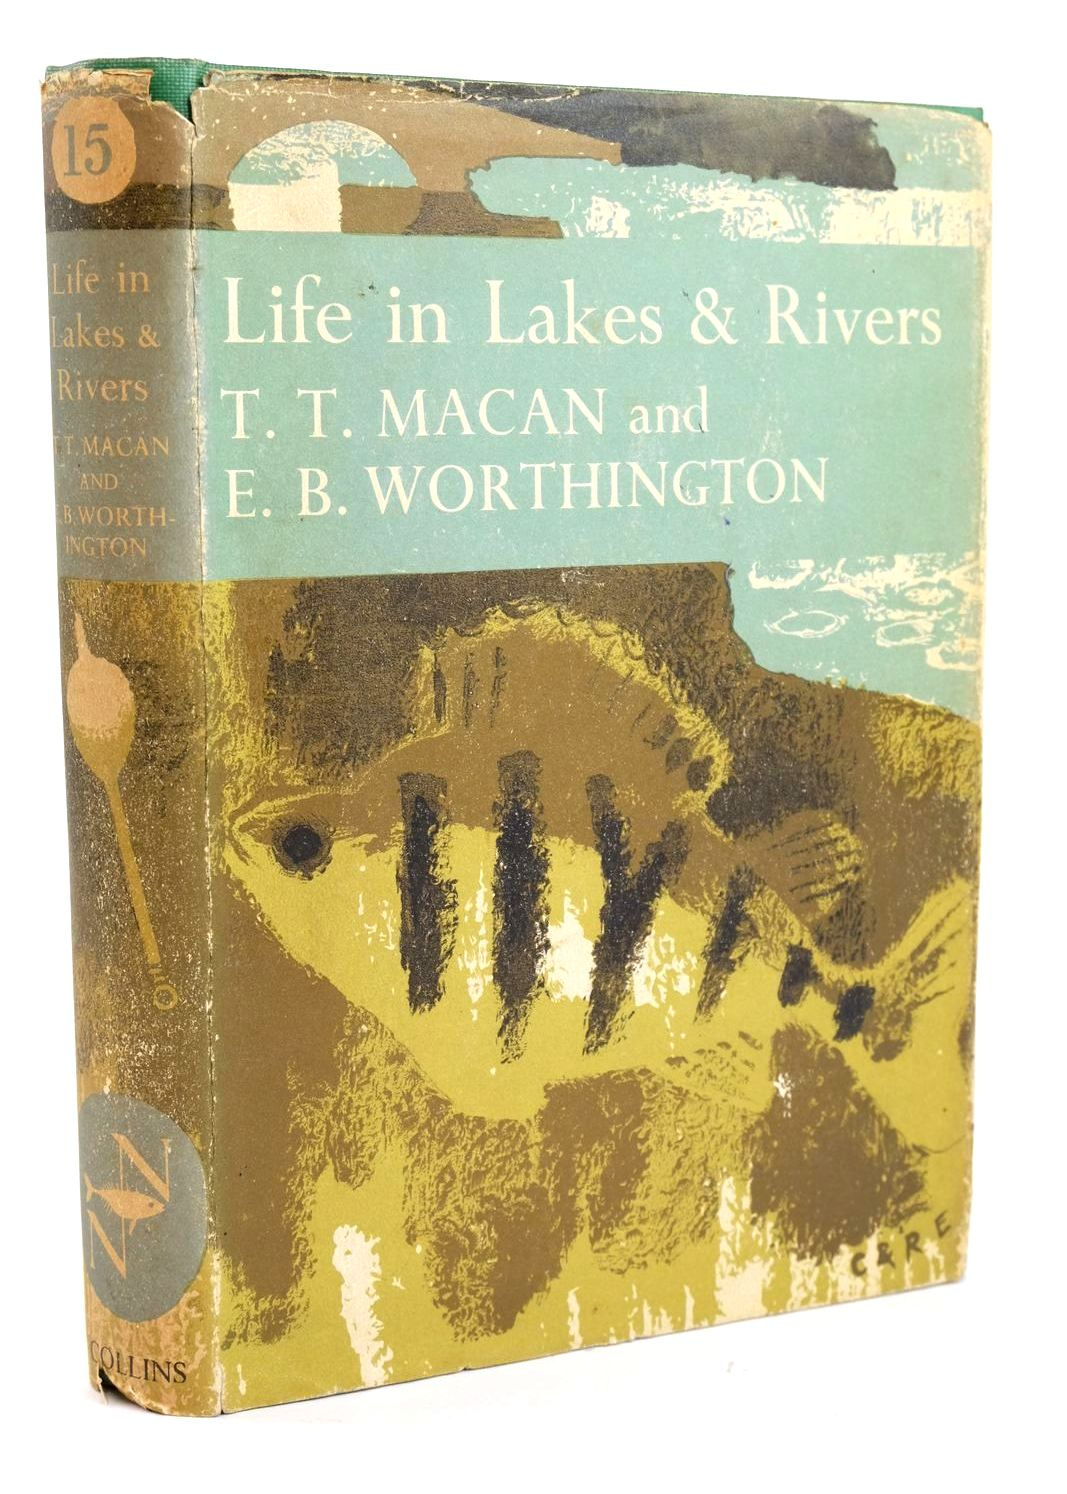 Photo of LIFE IN LAKES AND RIVERS (NN 15) written by Macan, T.T. Worthington, E.B. published by Collins (STOCK CODE: 1319461)  for sale by Stella & Rose's Books